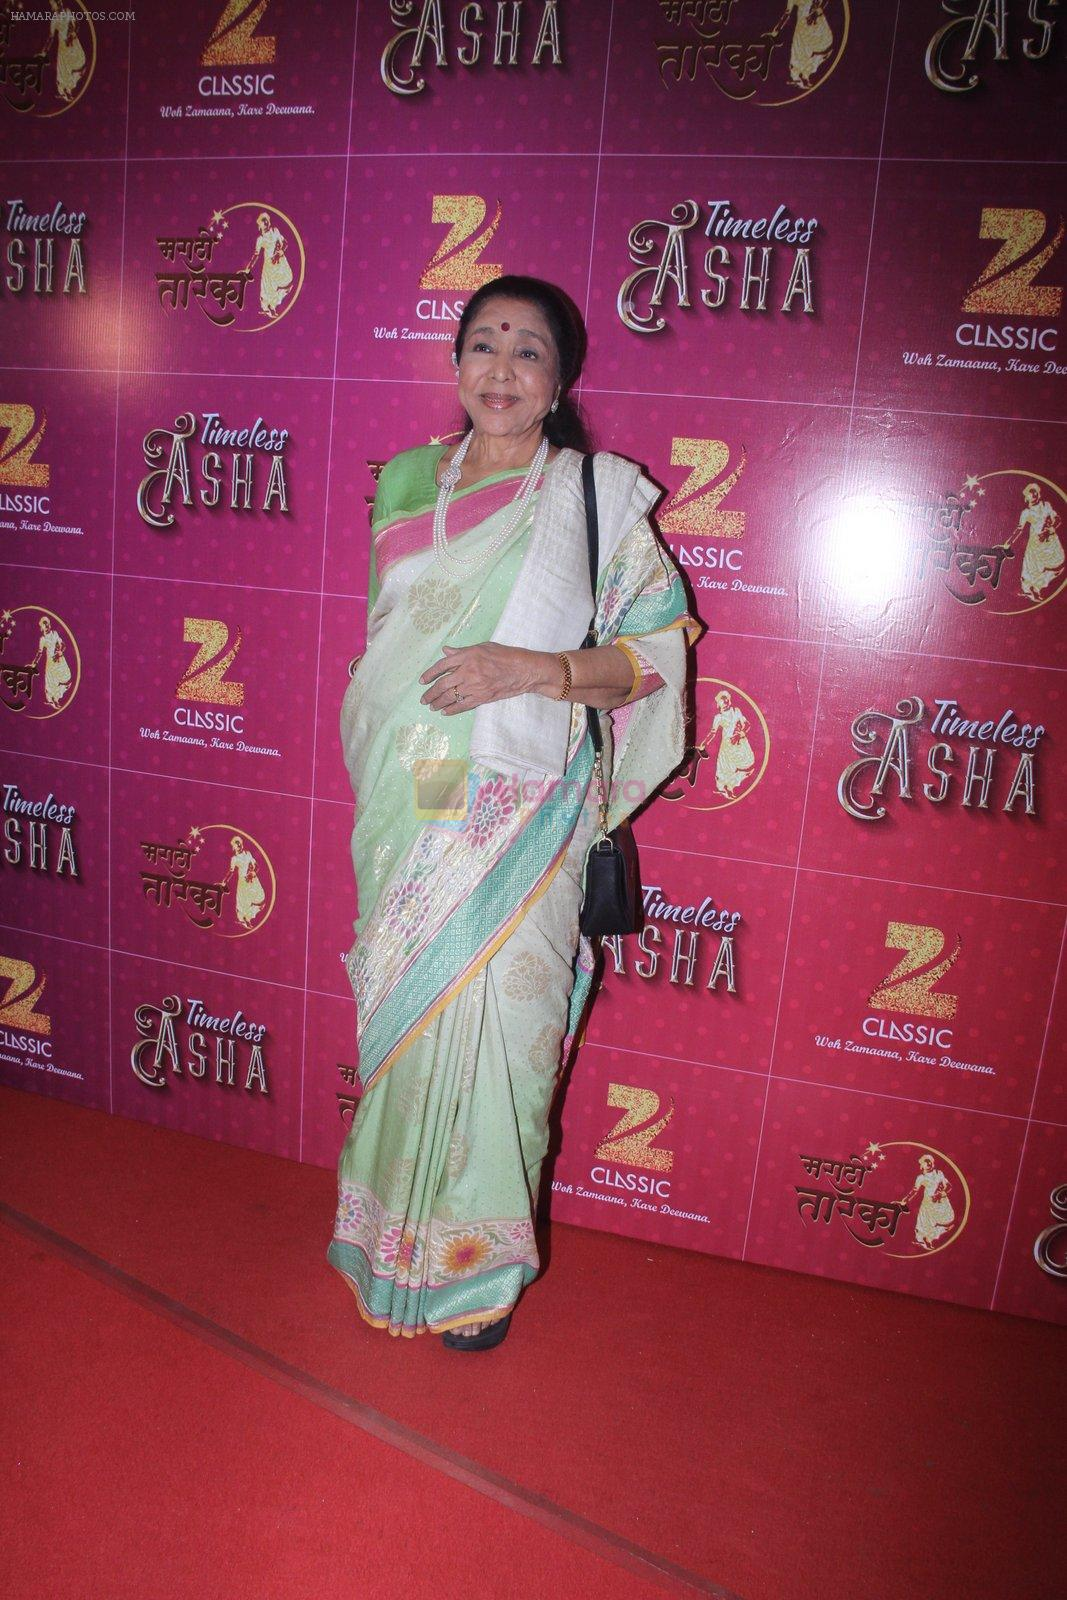 Bollywood singer Asha Bhosle during the musical concert Timless Asha organised by Zee Classsic on occasion of her 83rd birthday in Mumbai, India on September 8, 2016